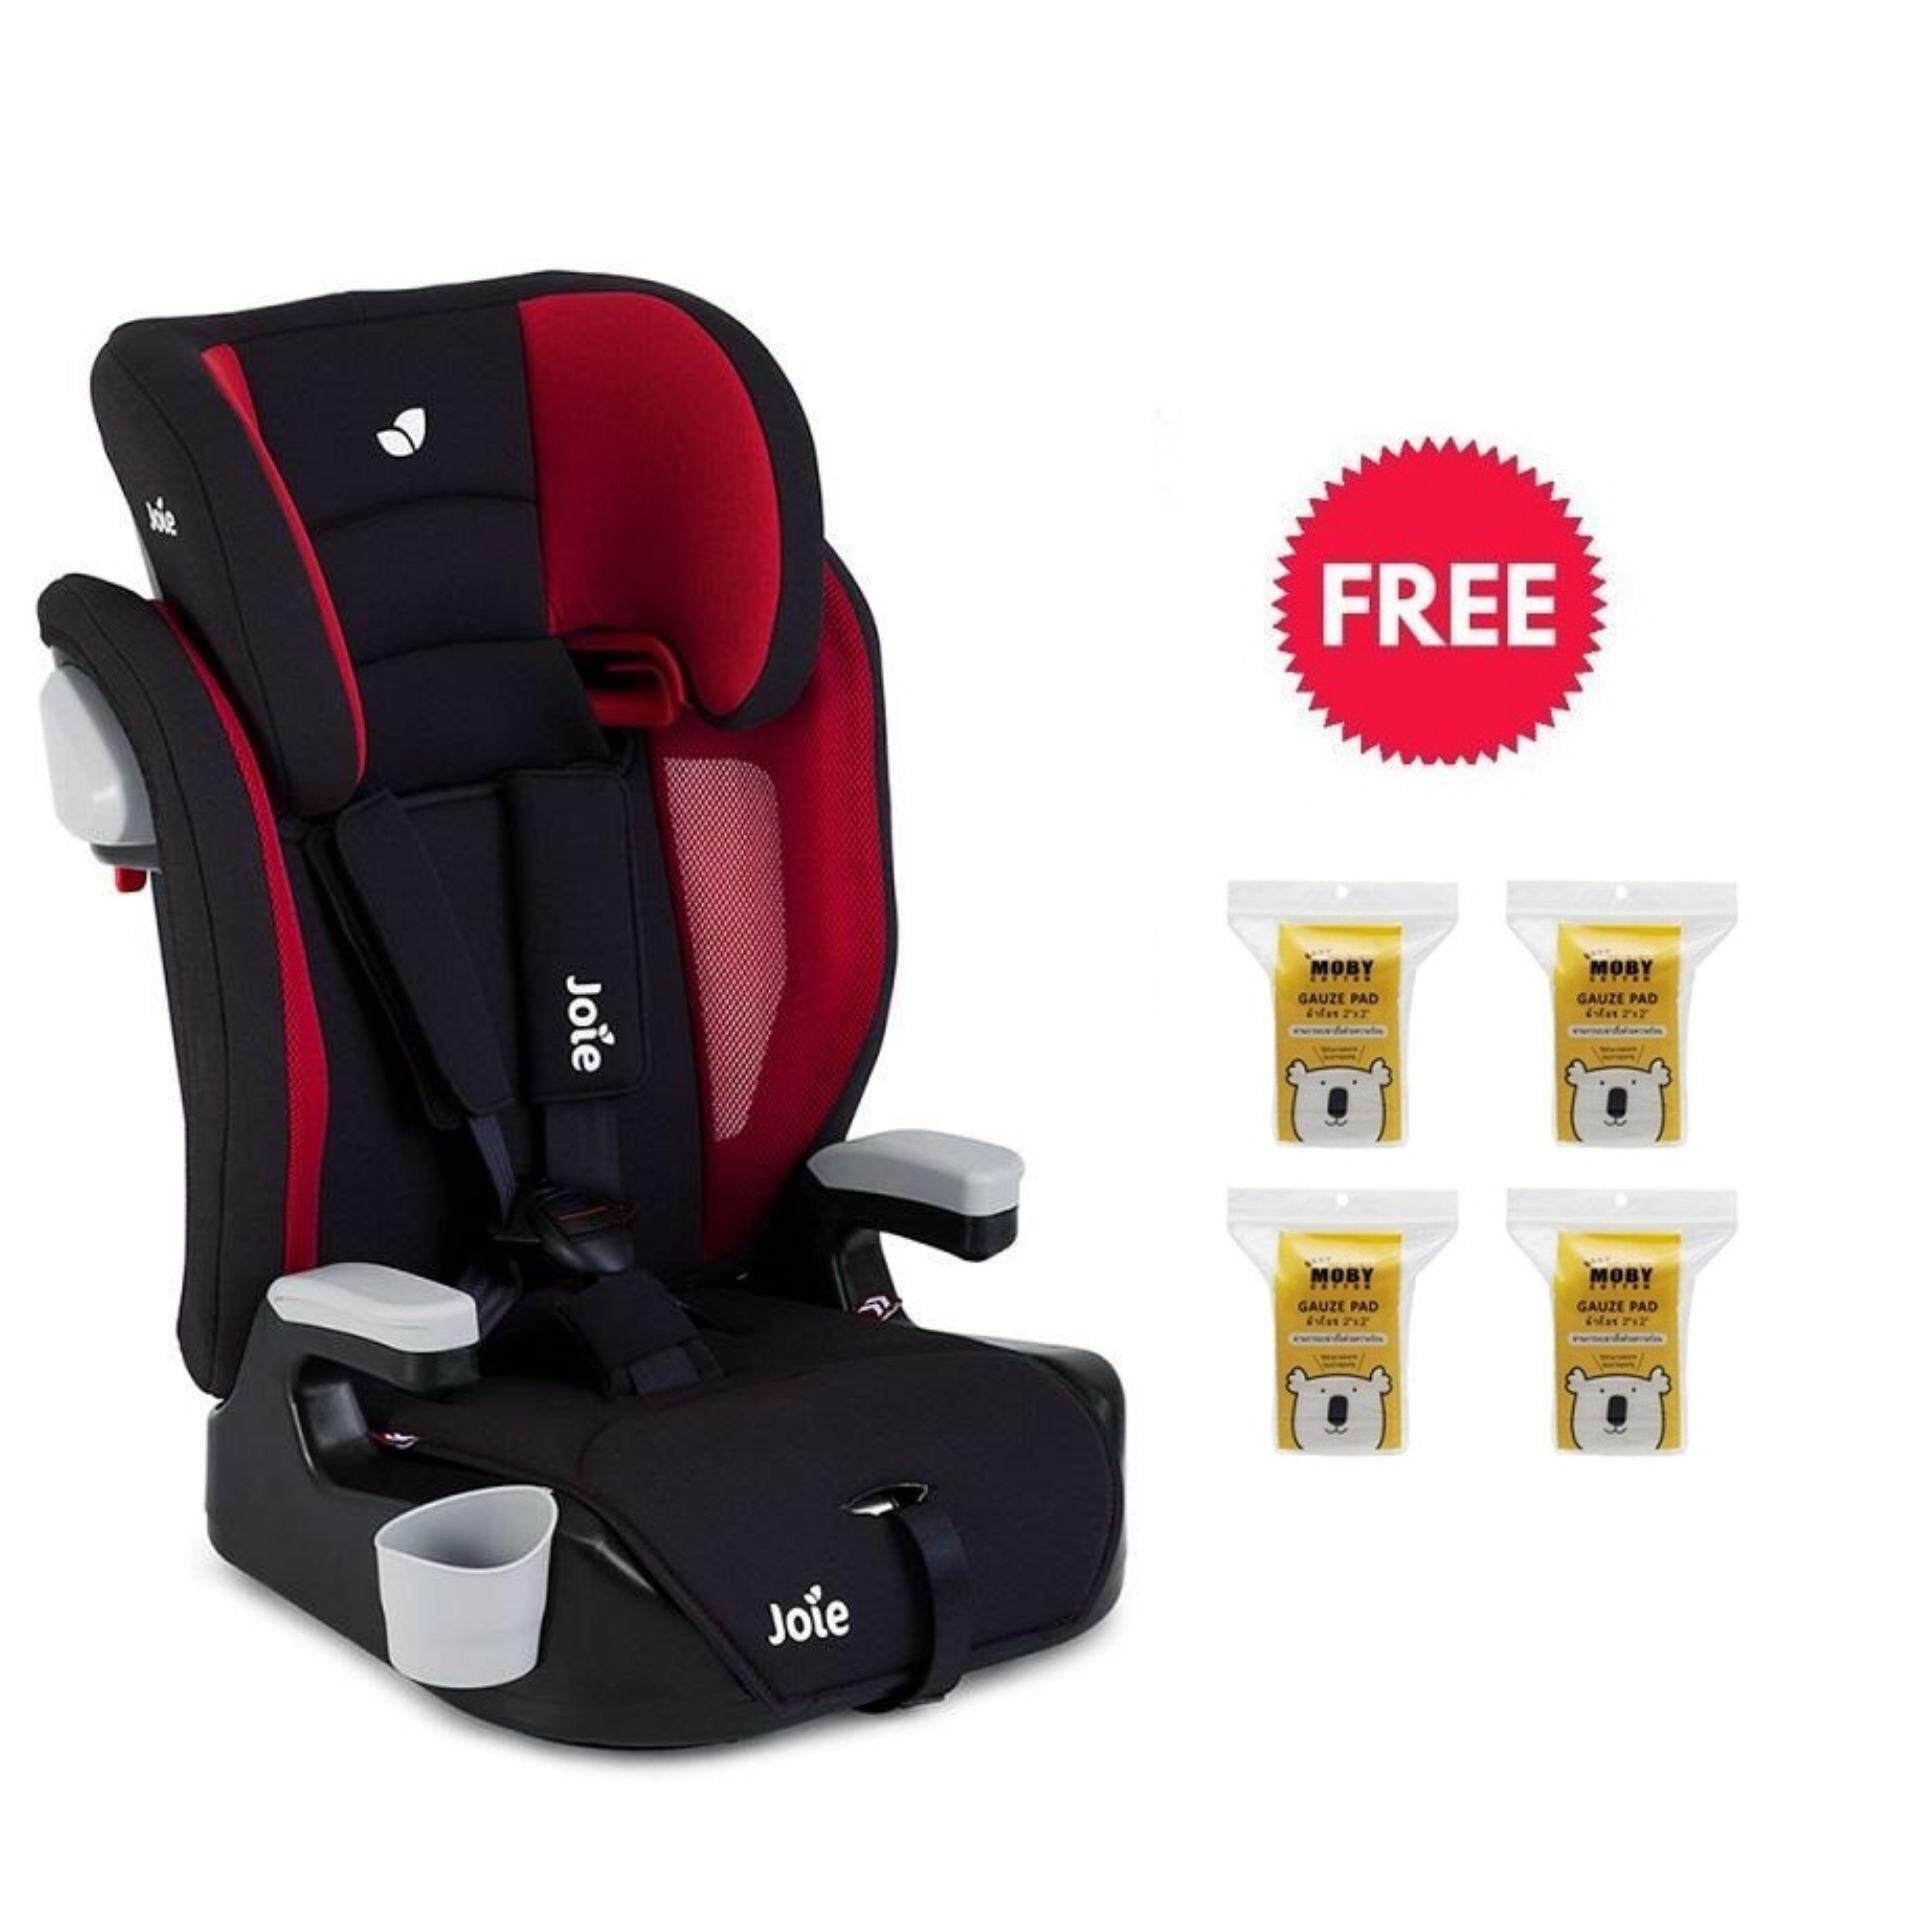 Joie Car Seat Elevate Cherry ของแท้ศูนย์ไทย + Free (Baby Moby Gauze x 4)